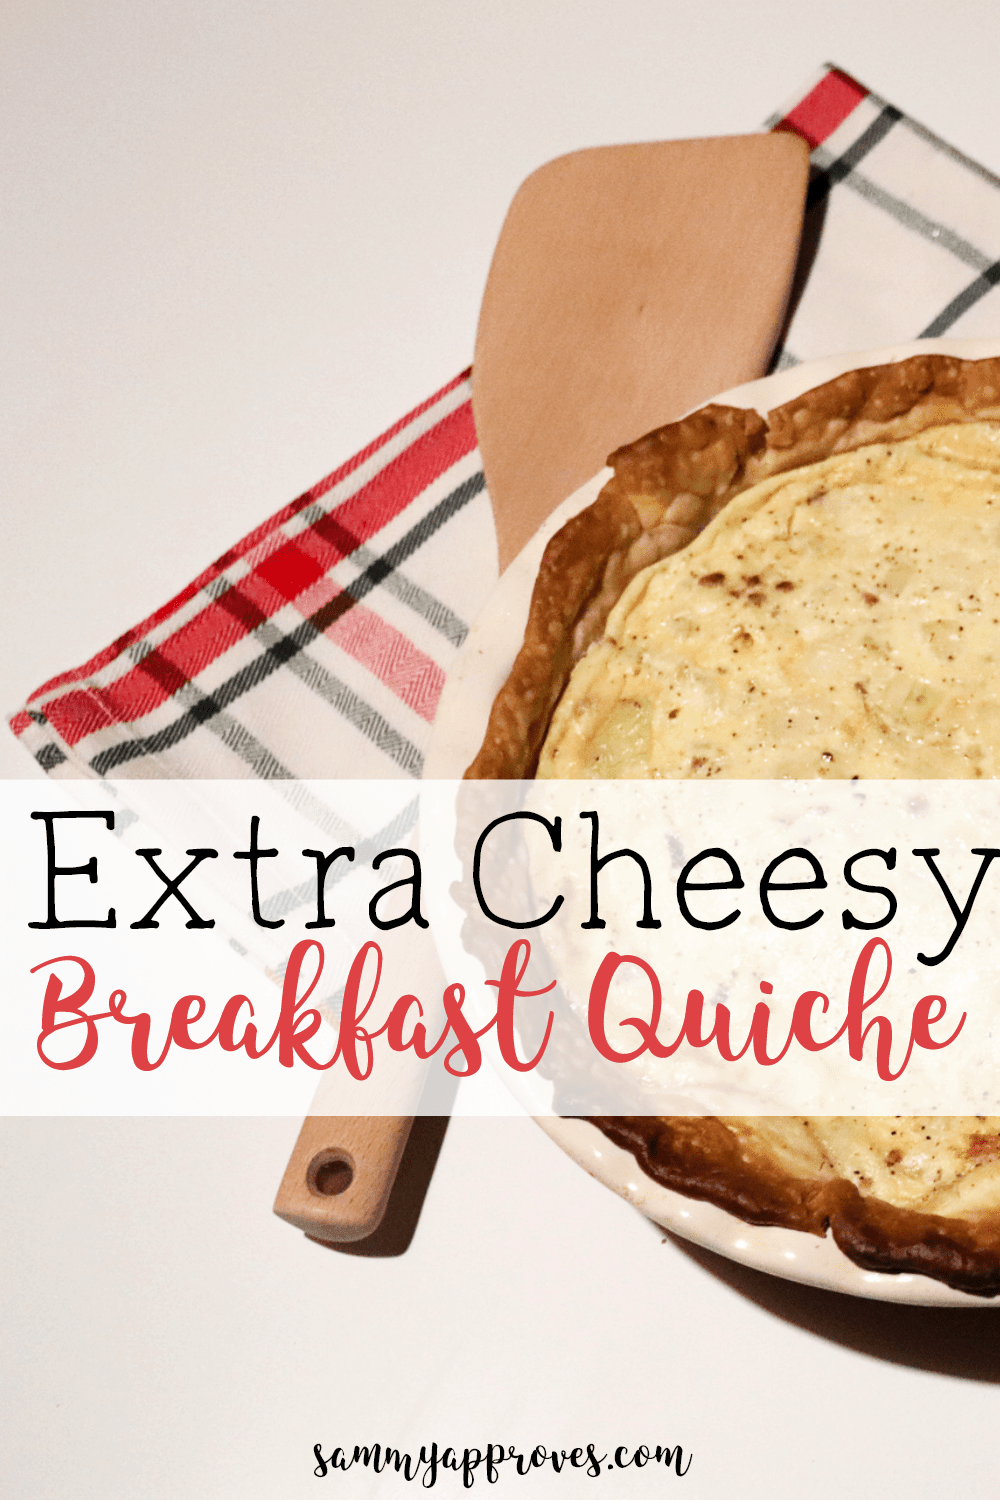 Extra Cheesy Breakfast Quiche